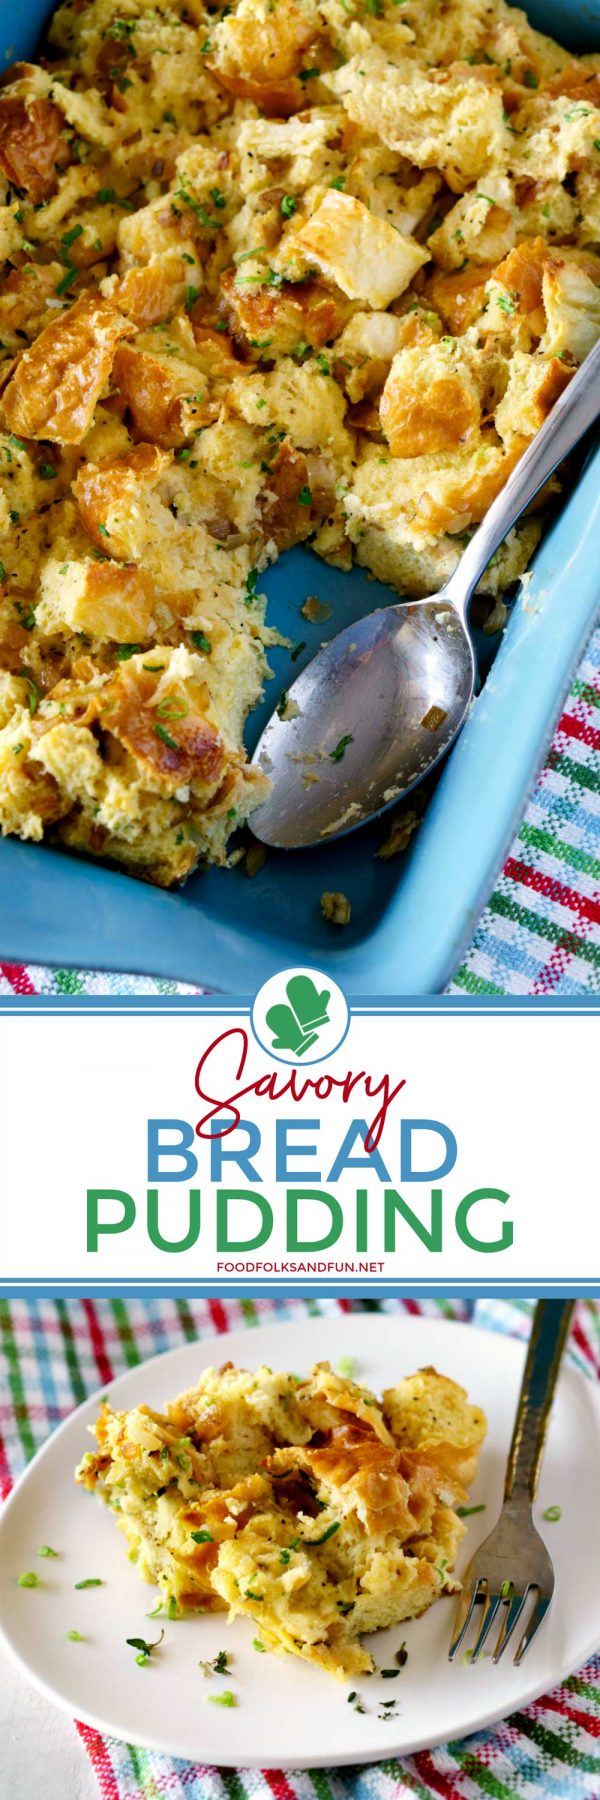 Savory Bread Pudding recipe